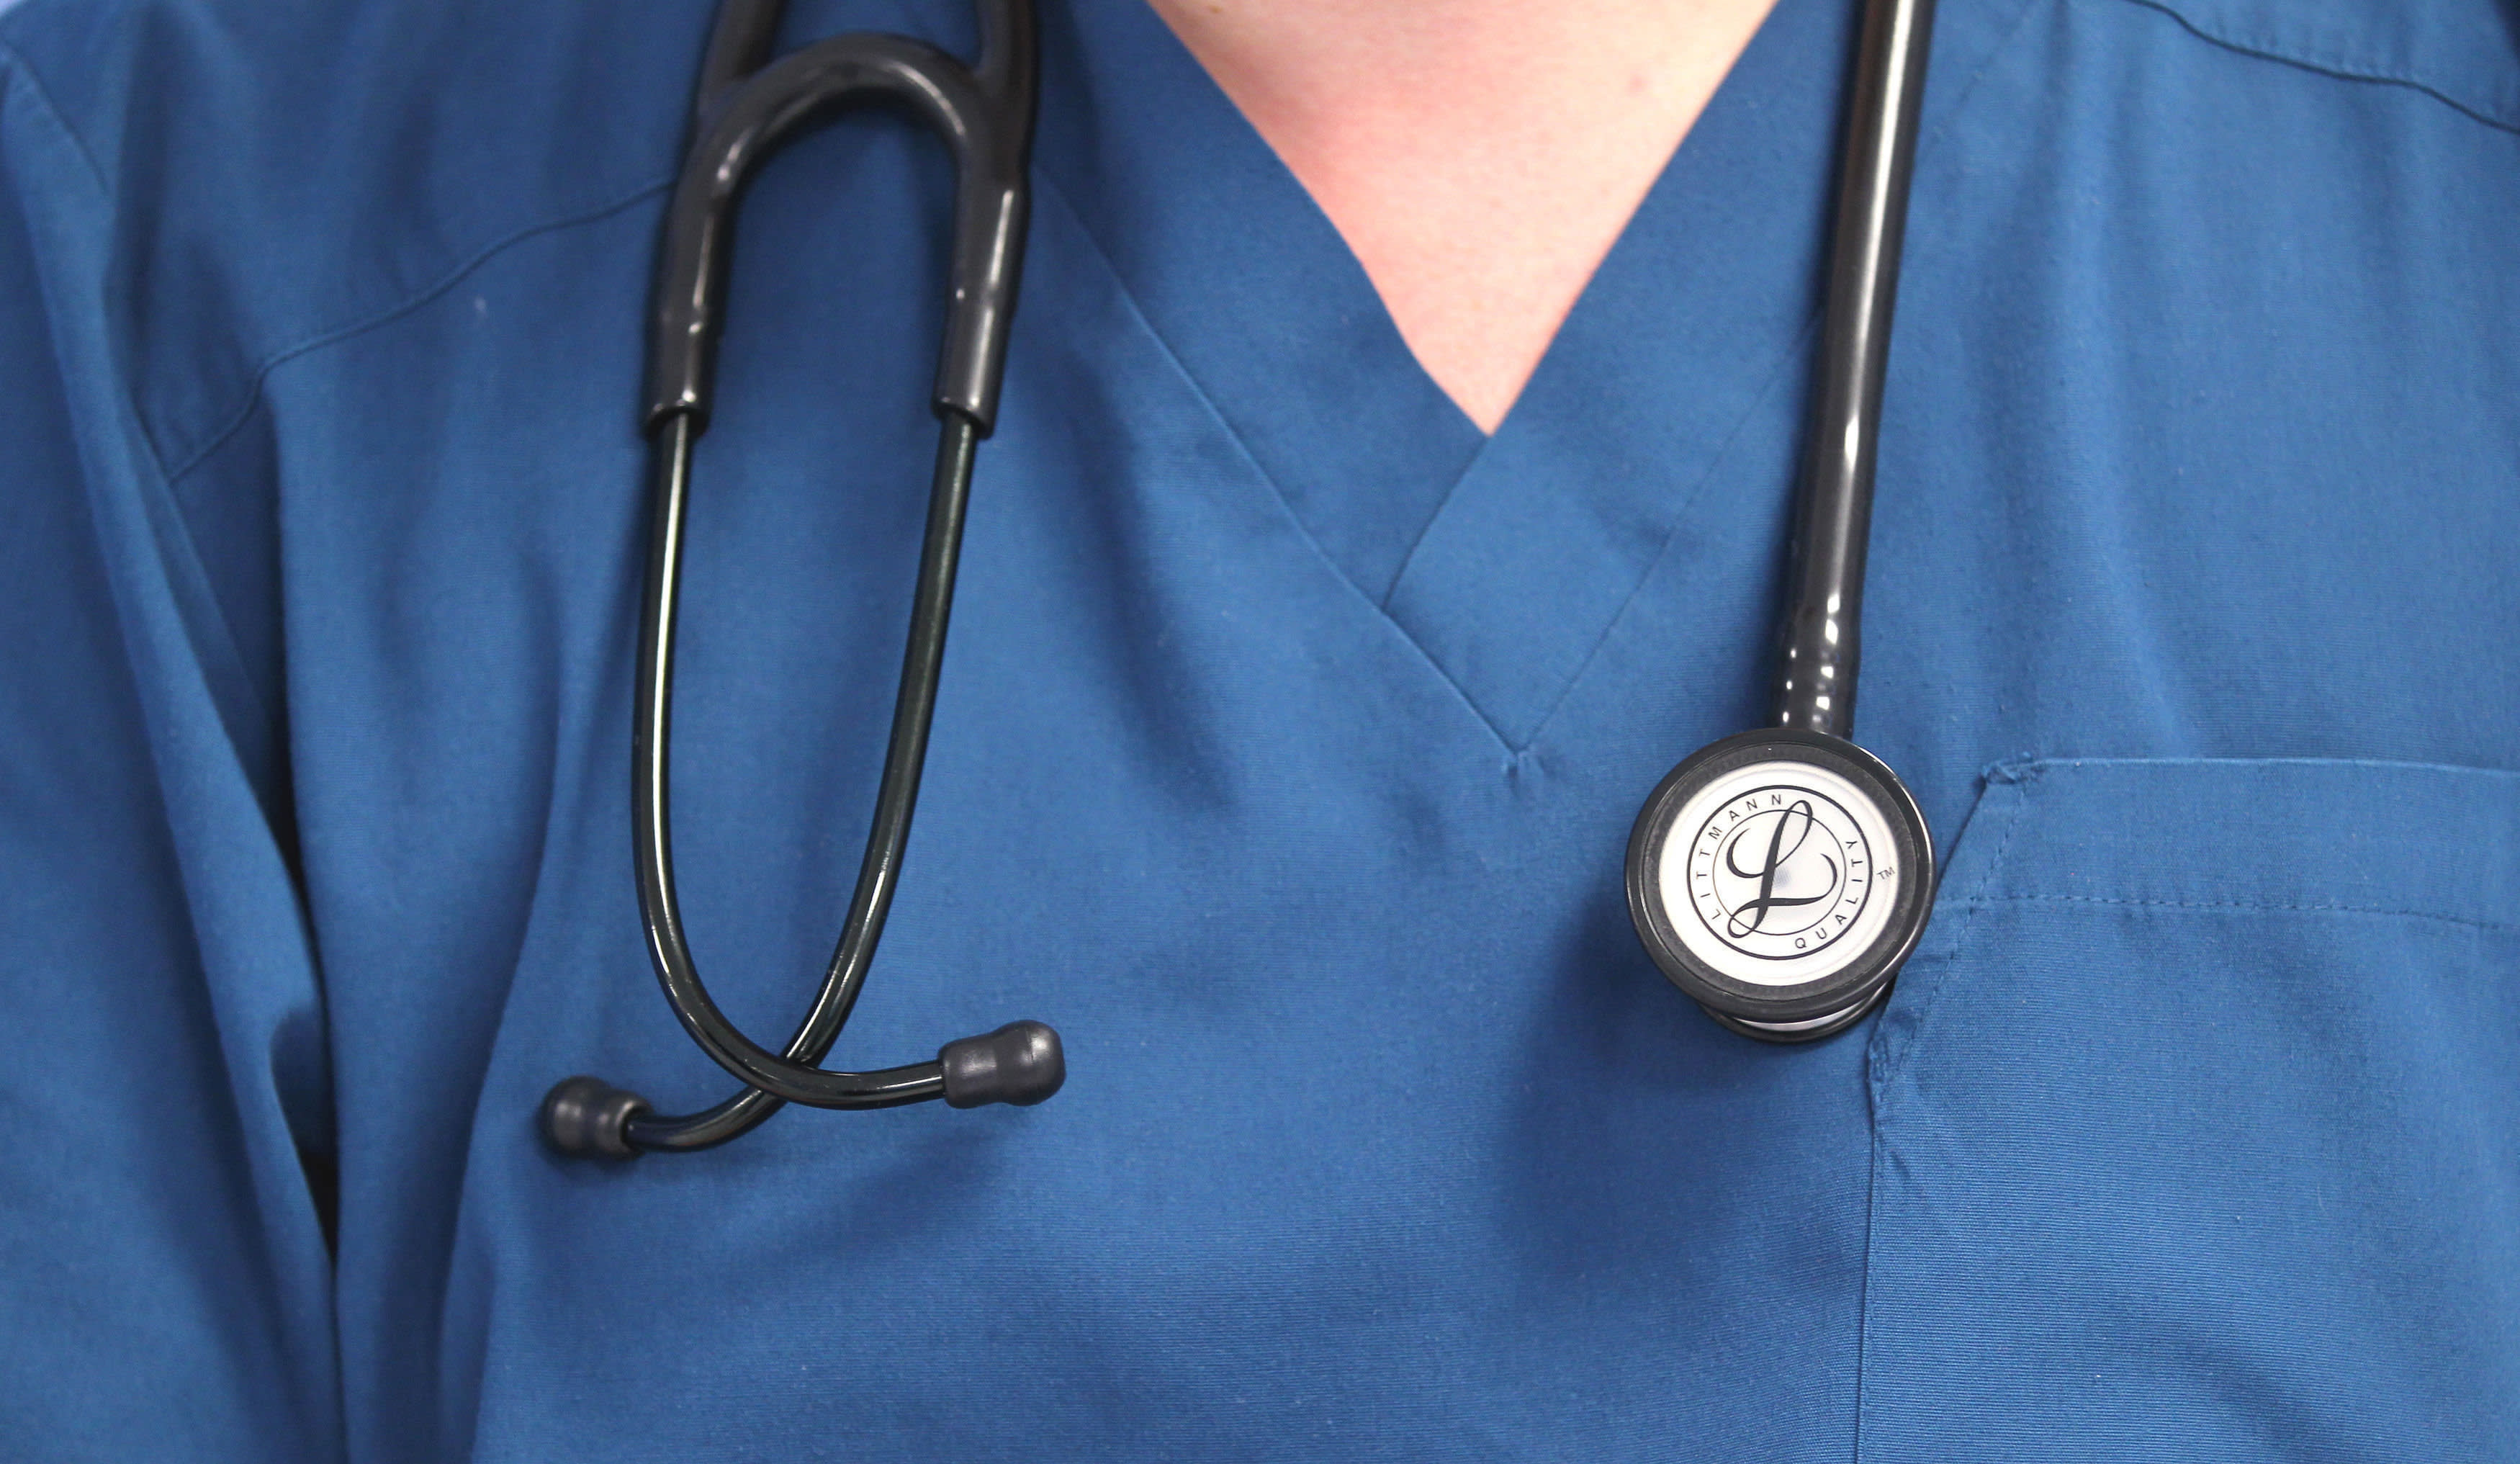 Doctors offered cash as pension substitute